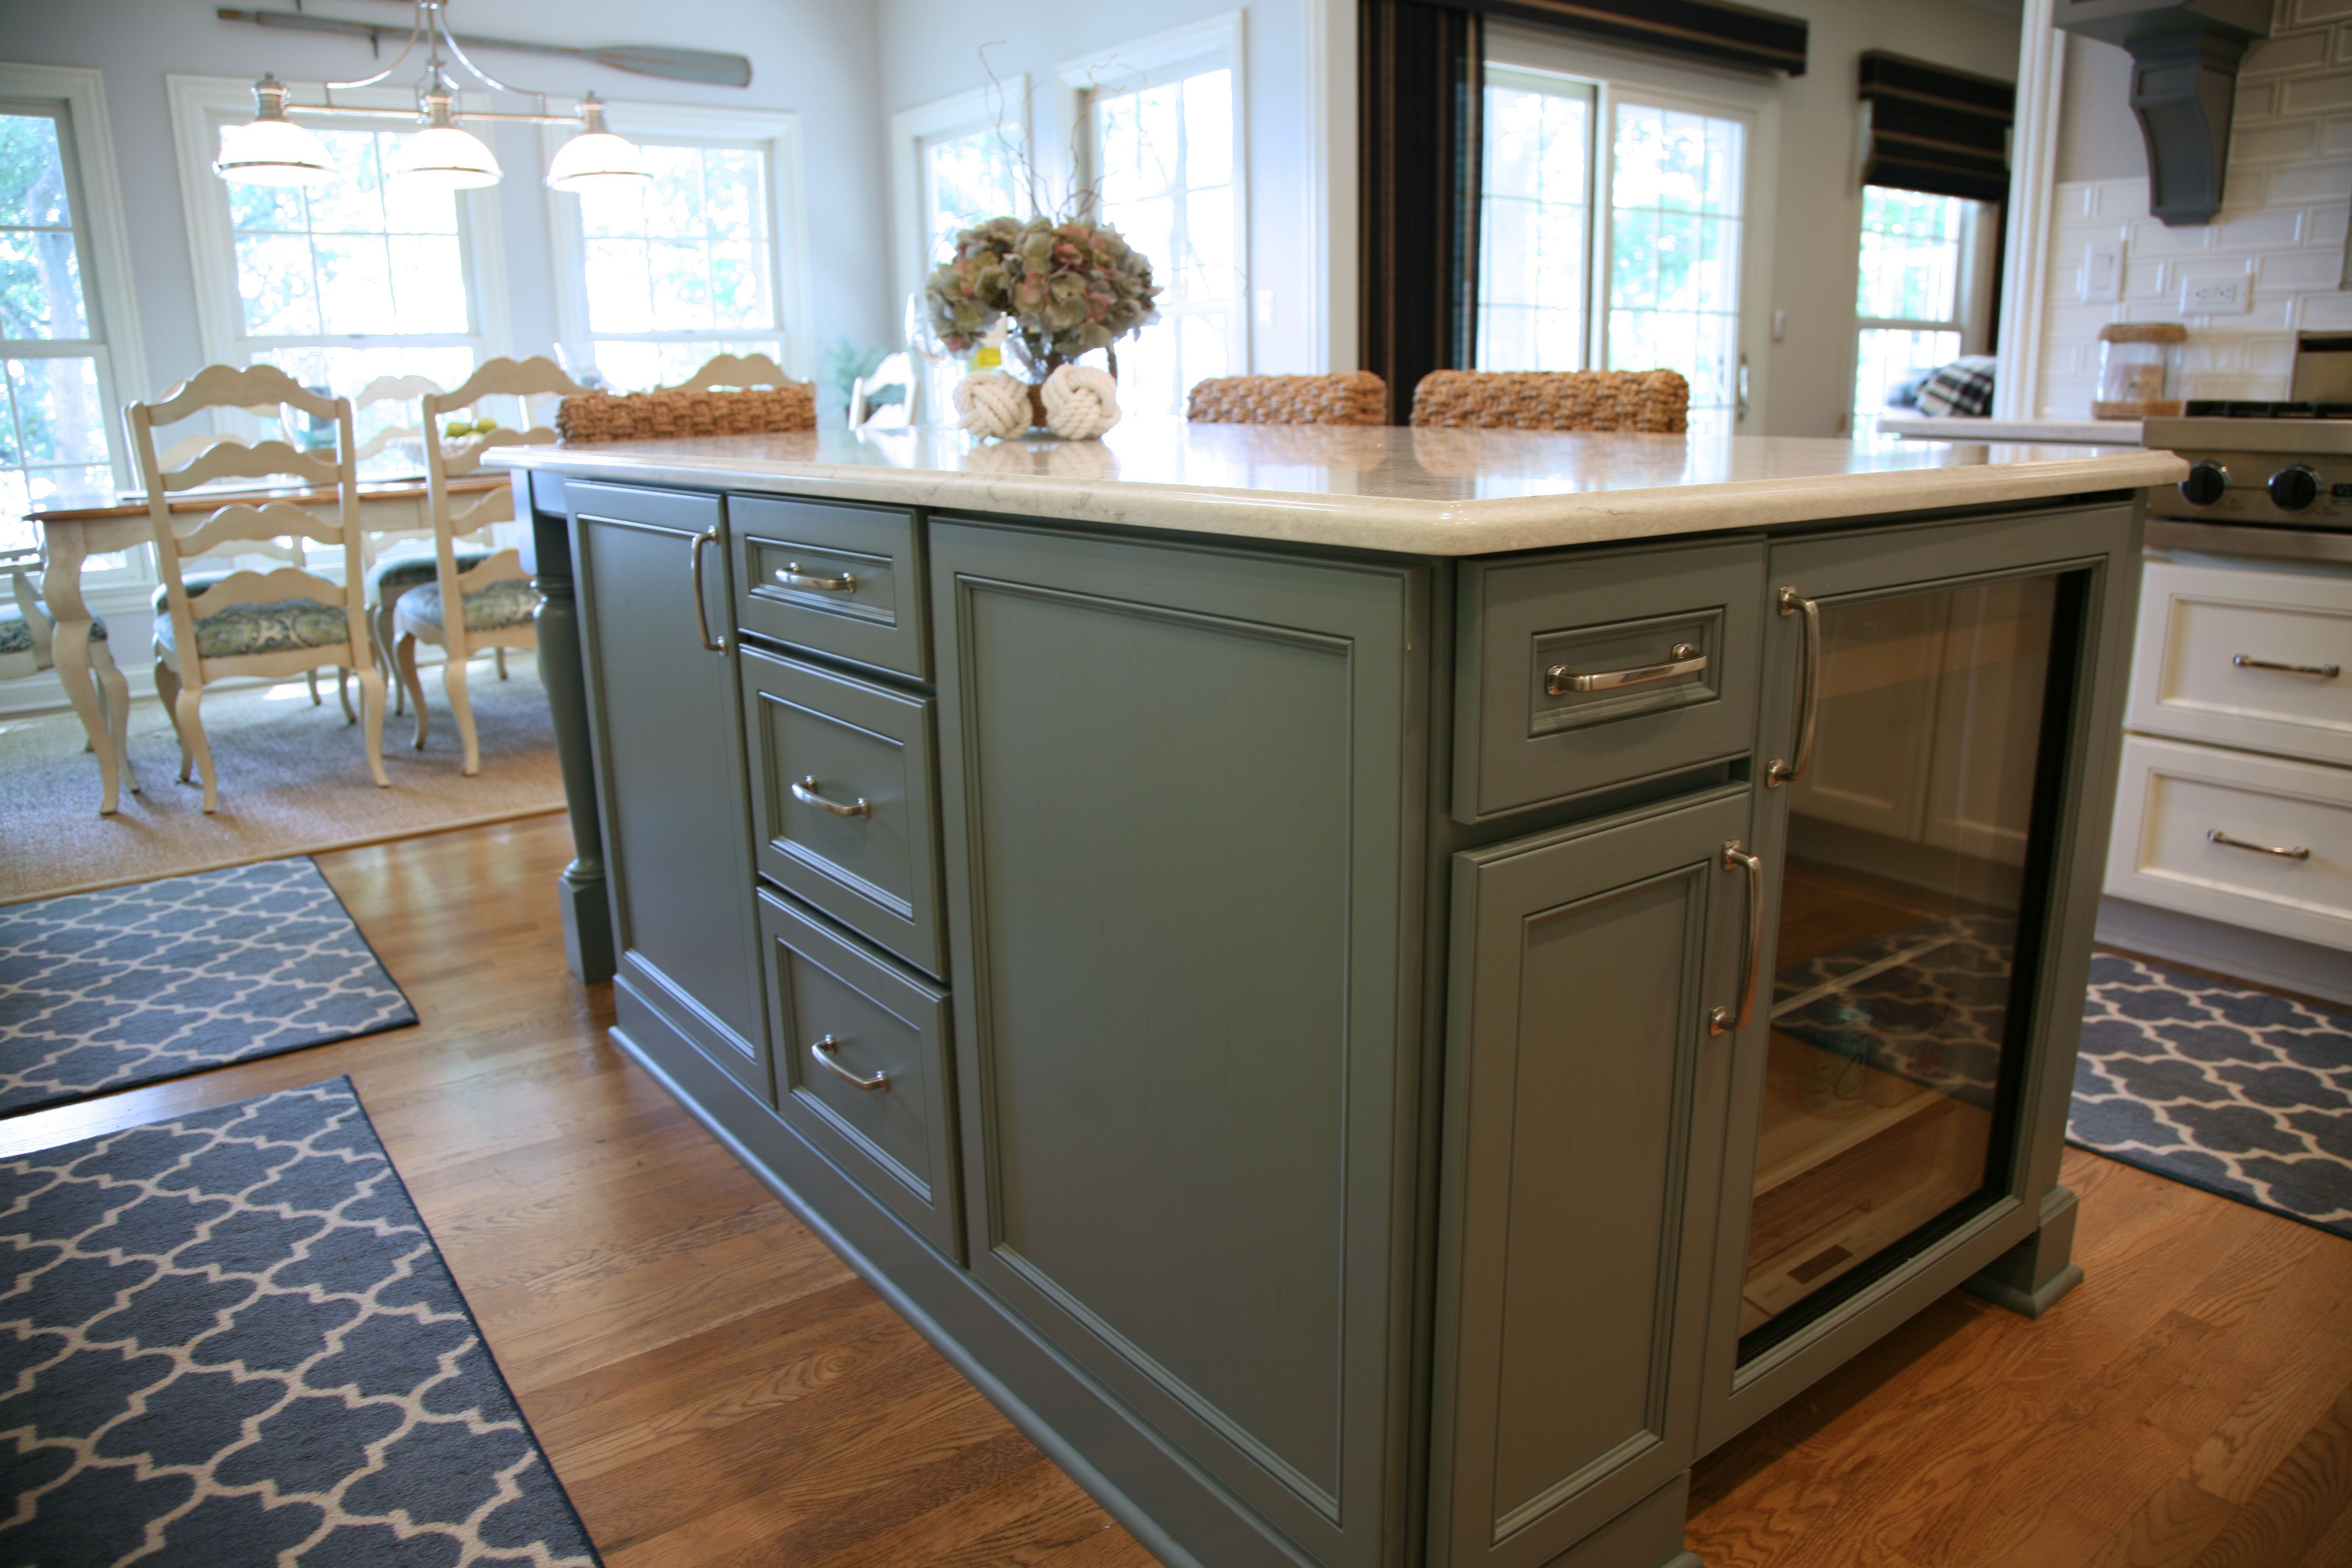 Geneva Cabinet Company Llc Lake Geneva Wi Kitchen Island In Colorful Green Finish With Under Counter Refrigerator And Drawe Kitchen Cabinet Companies Cabinet